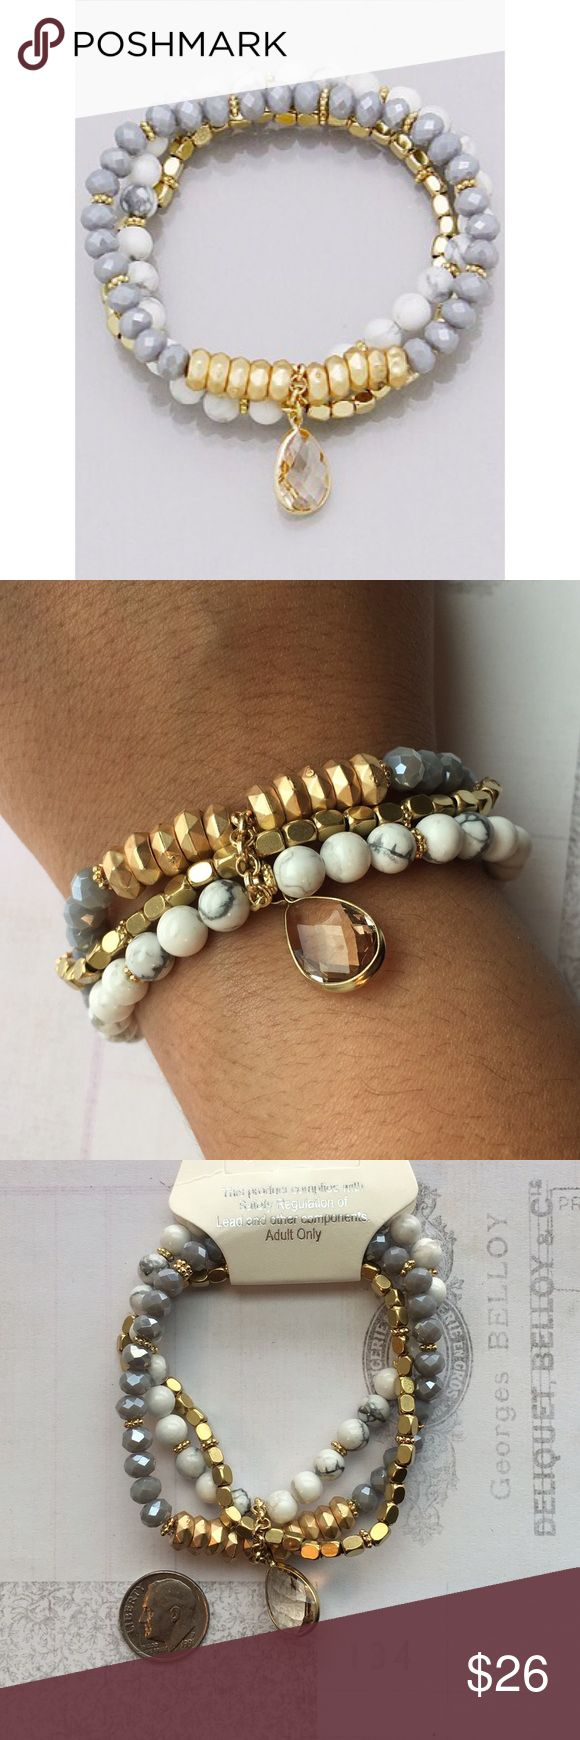 Multi Bead Stacked Stretch Bracelet Boutique